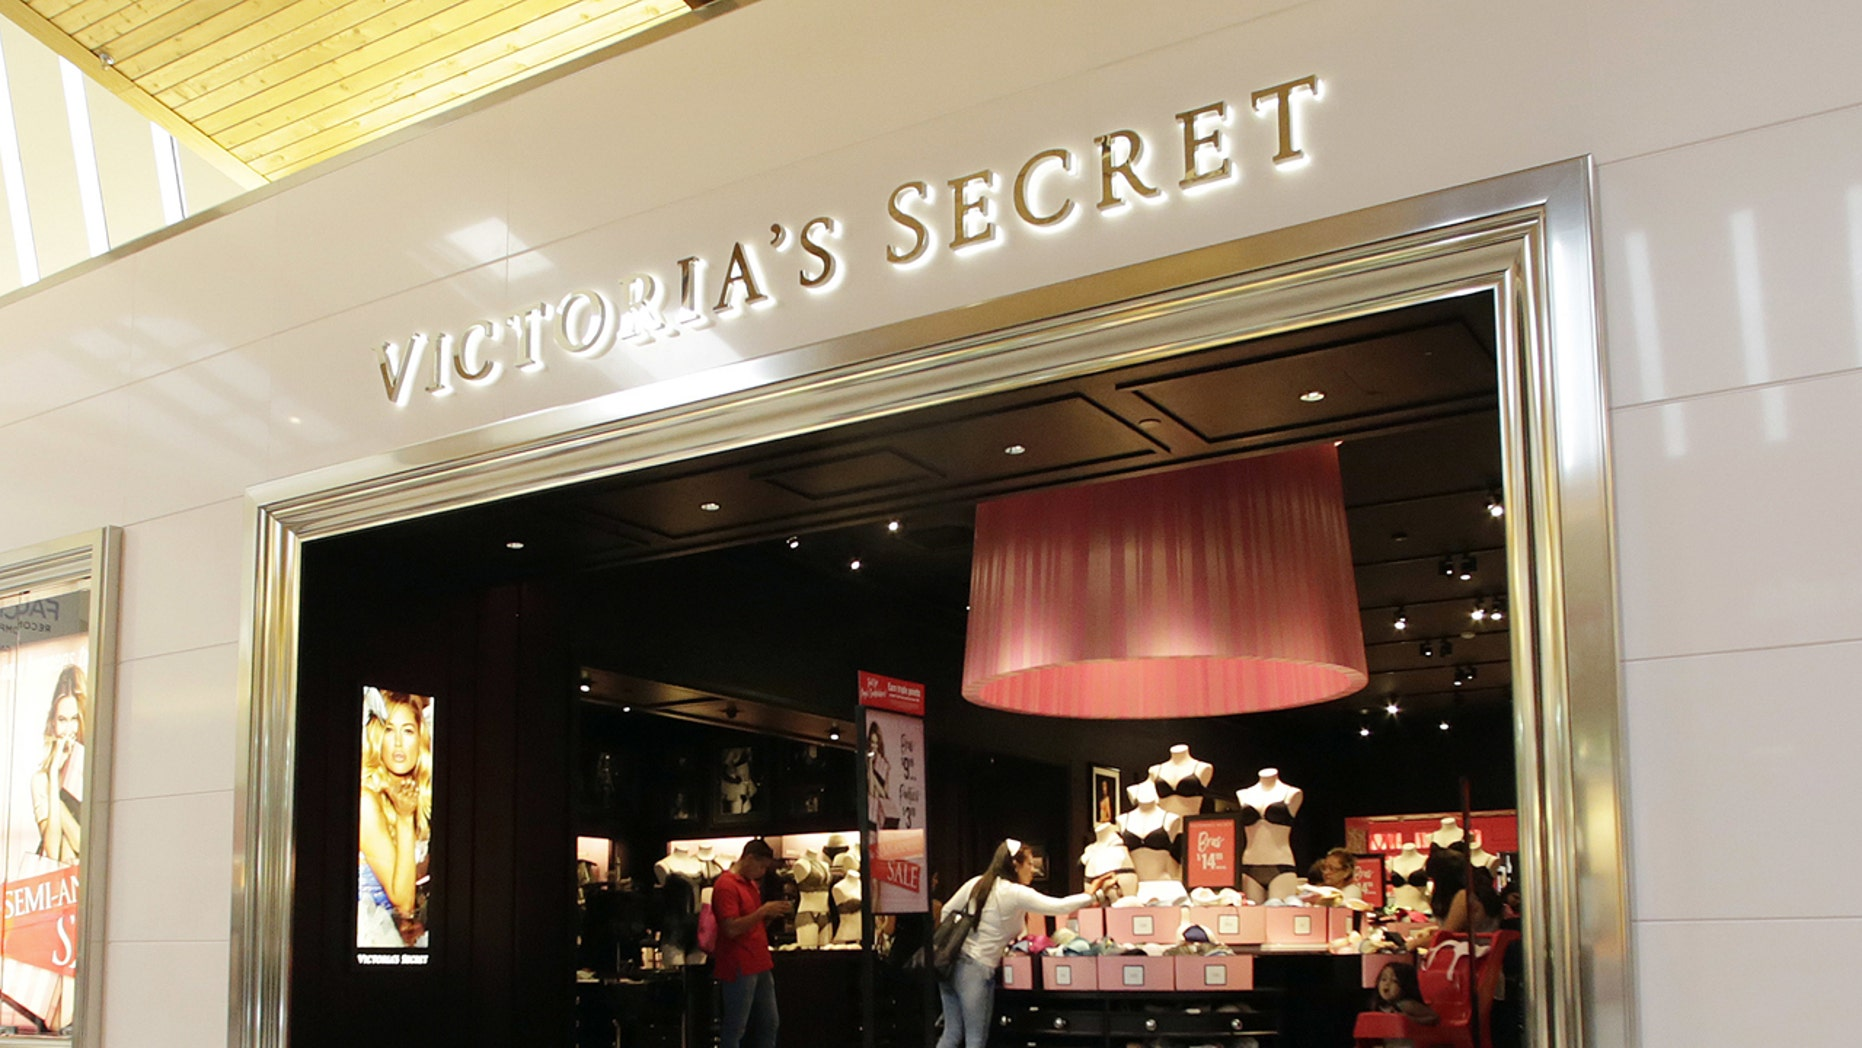 Patrons of a Victoria's Secret in Denmark were greeted by boisterous Irish soccer fans